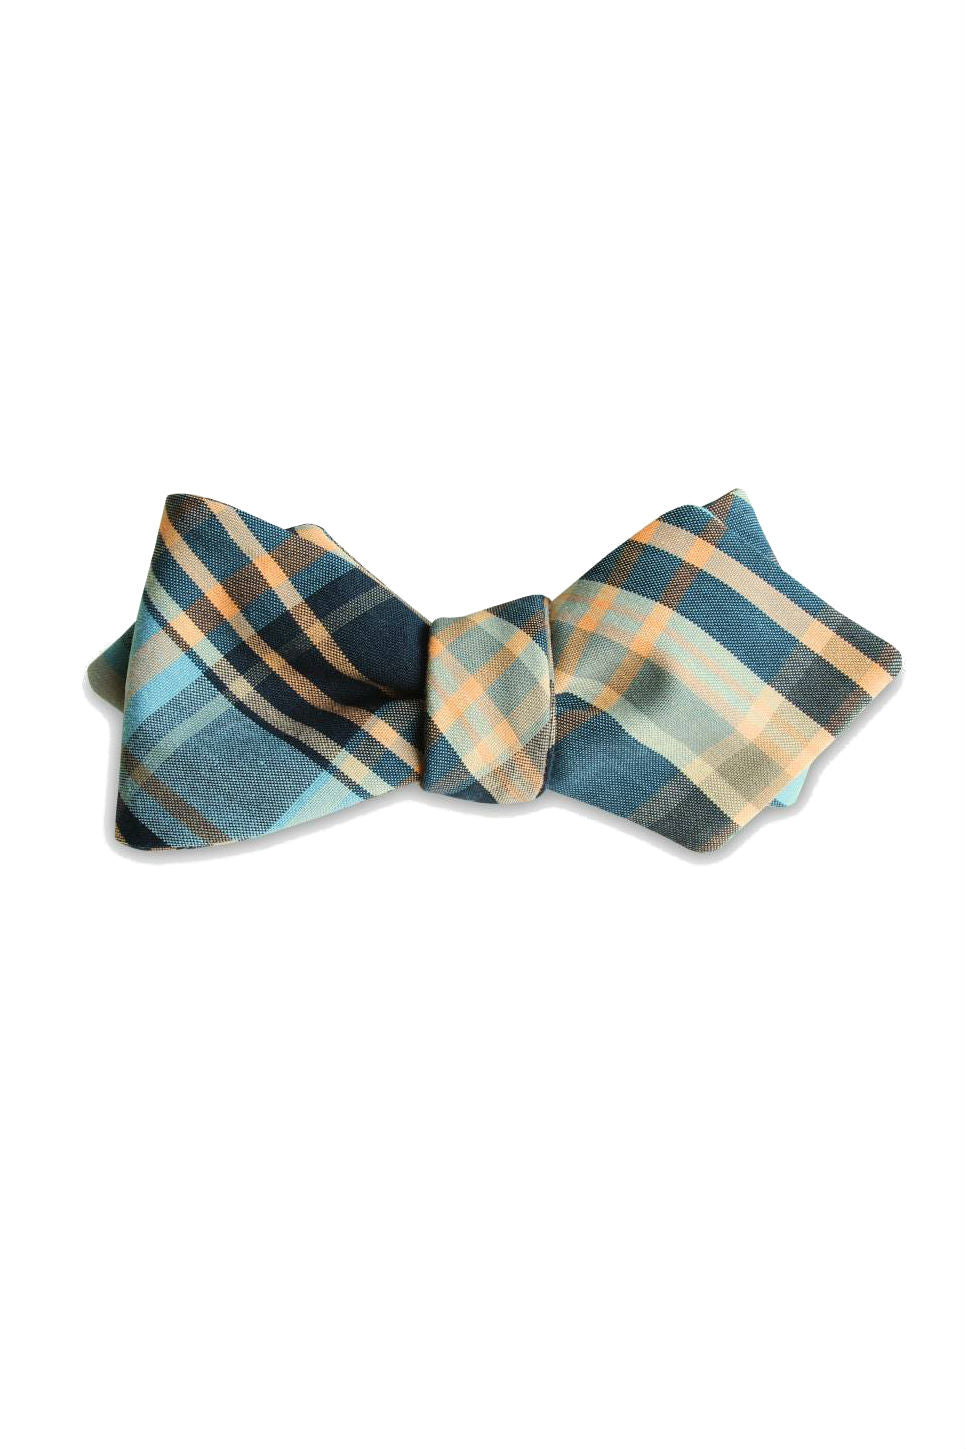 Pocket Square Clothing - Southern Gent Bowtie